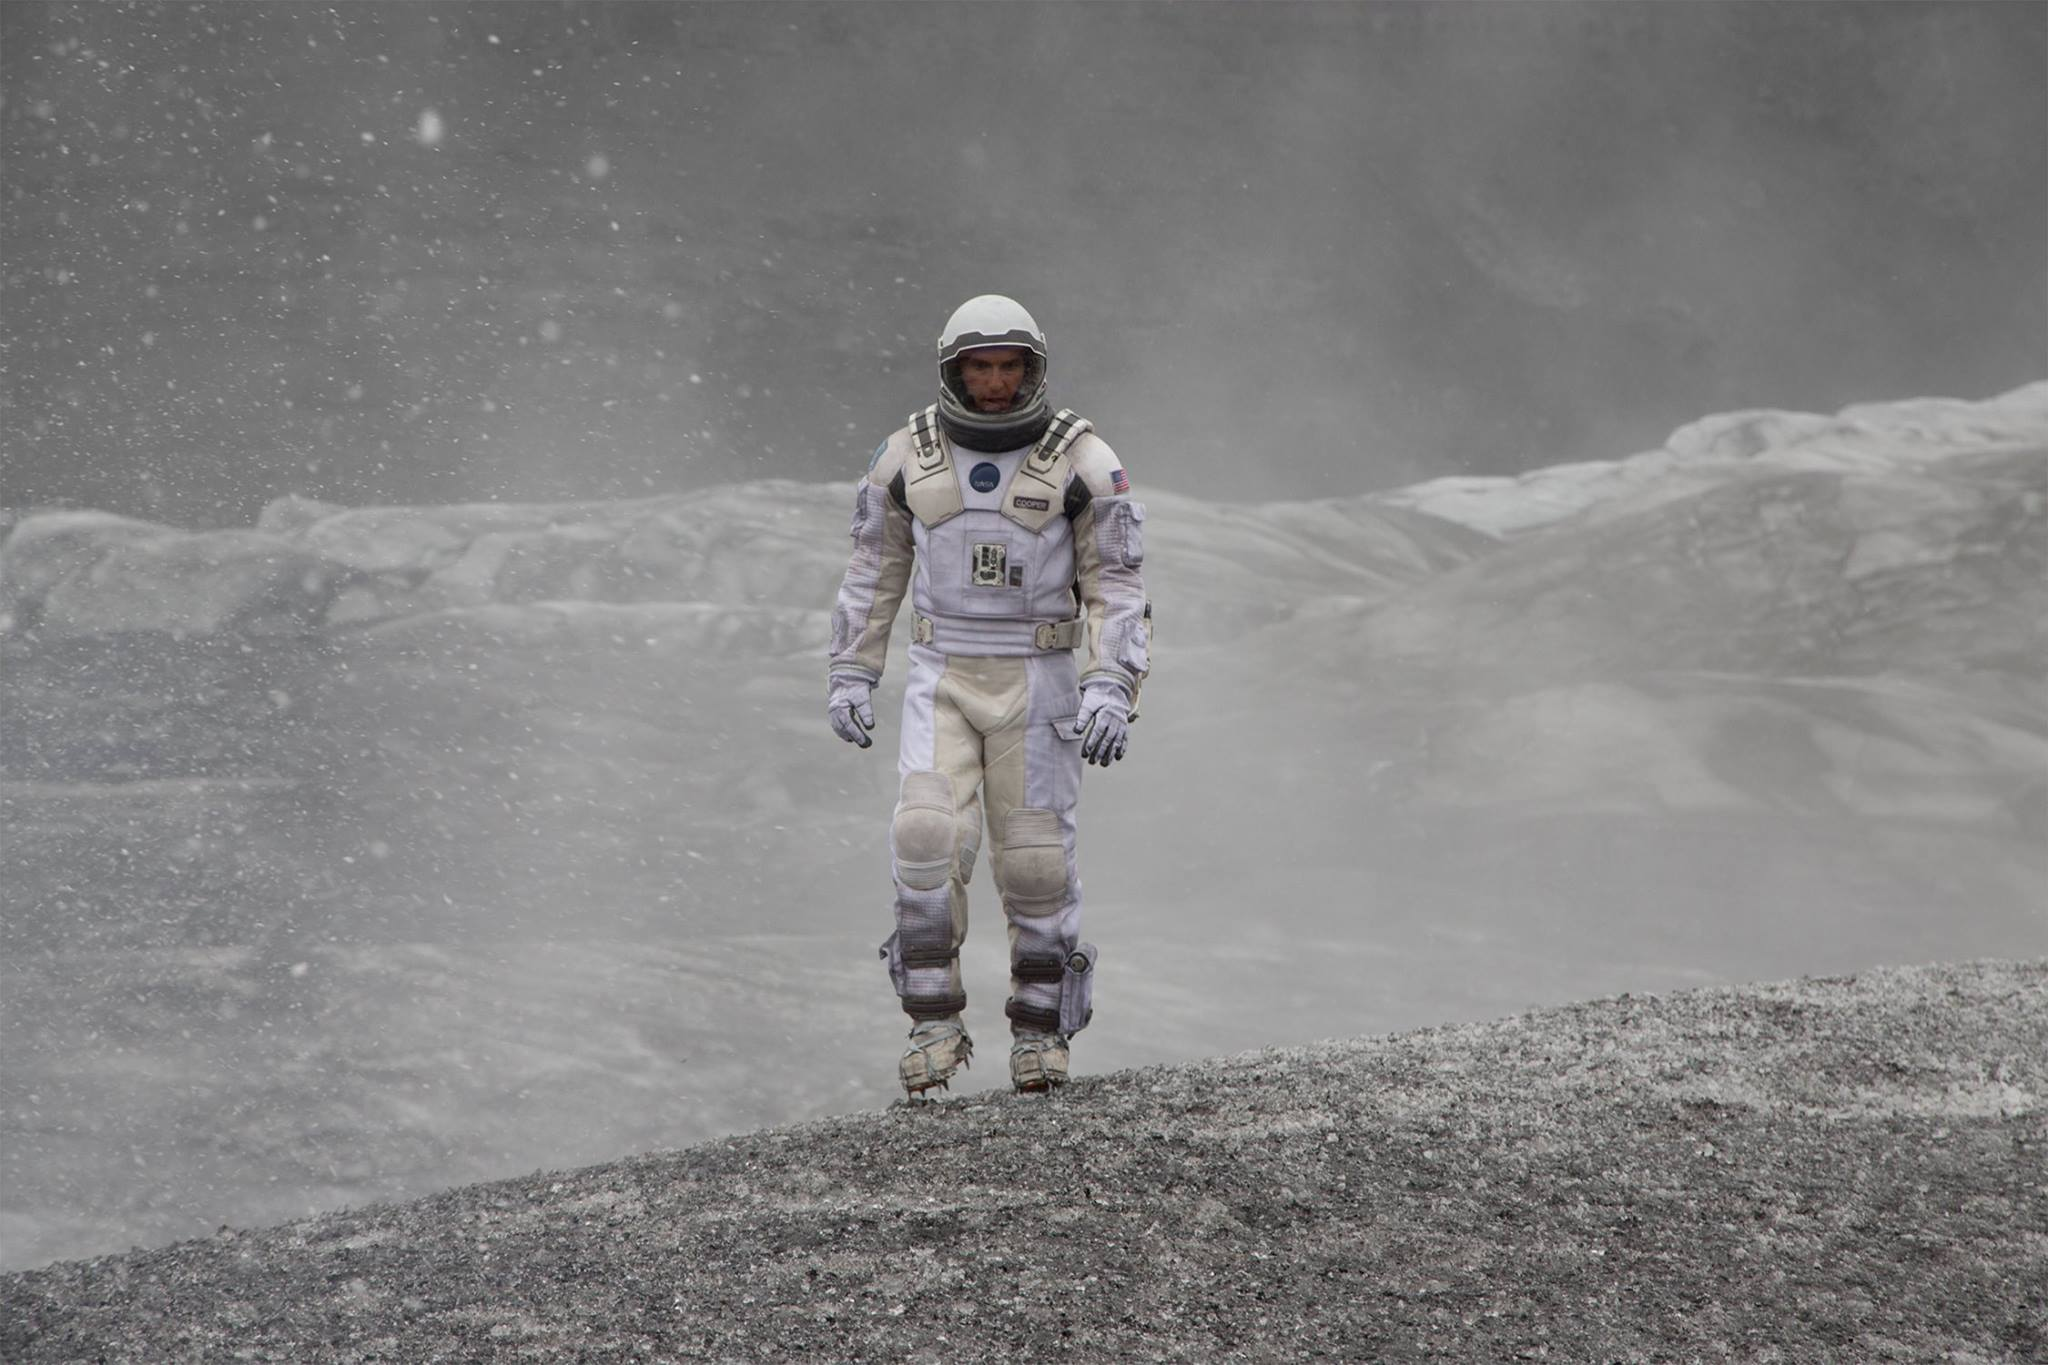 Promotional Still from 'Interstellar'